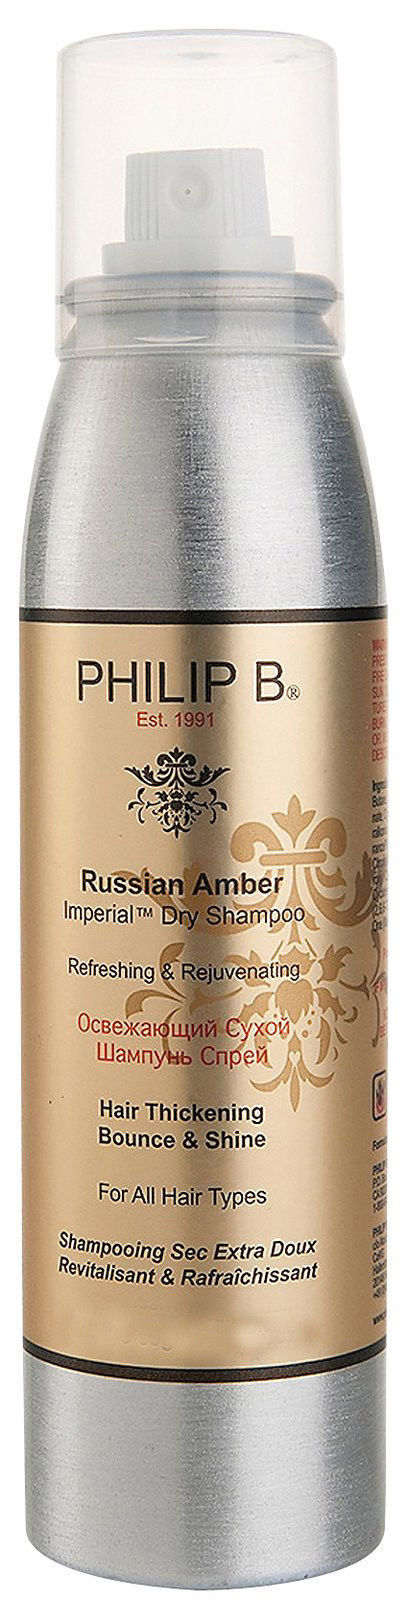 PHILIP B RUSSIAN AMBER DRY SHAMPOO 3oz/85ml. Free Shipping